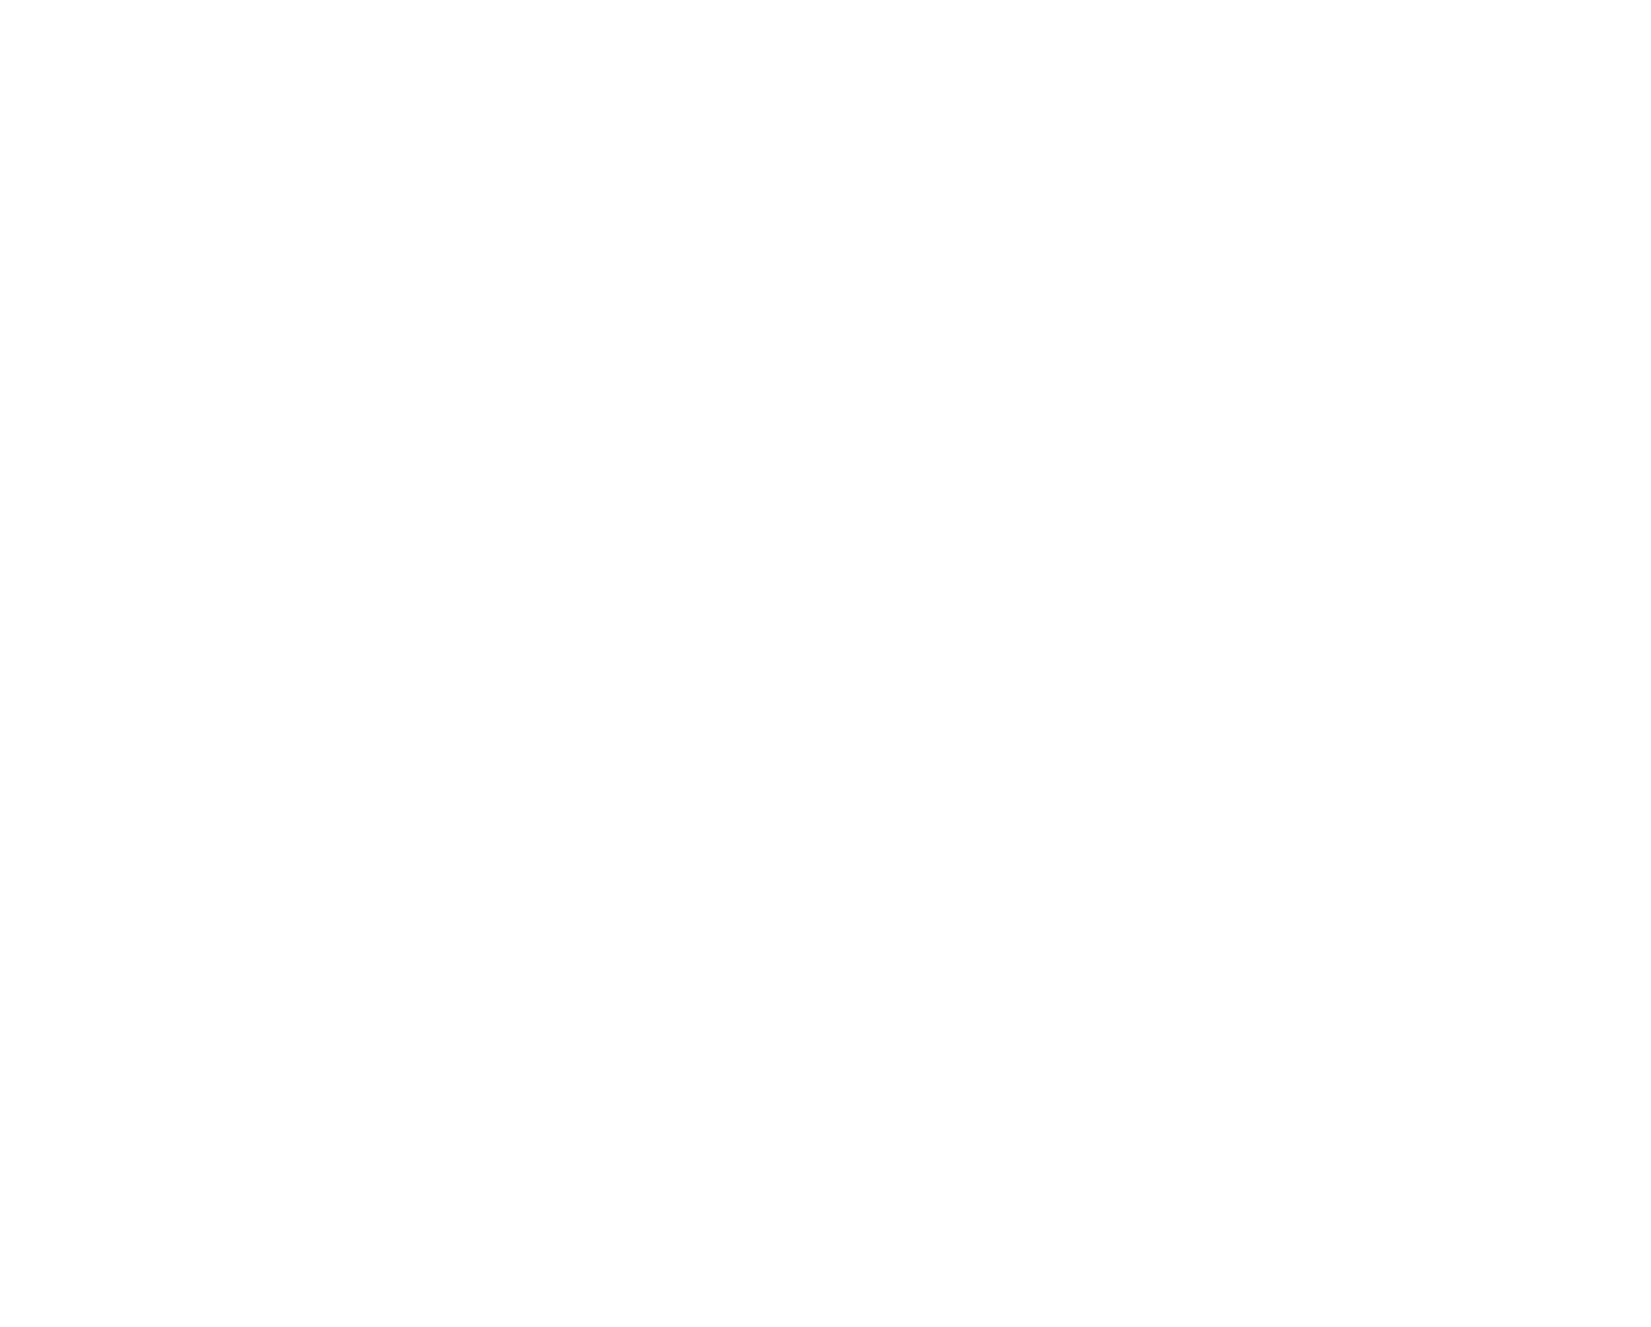 17th West Lothian Scouts Logo